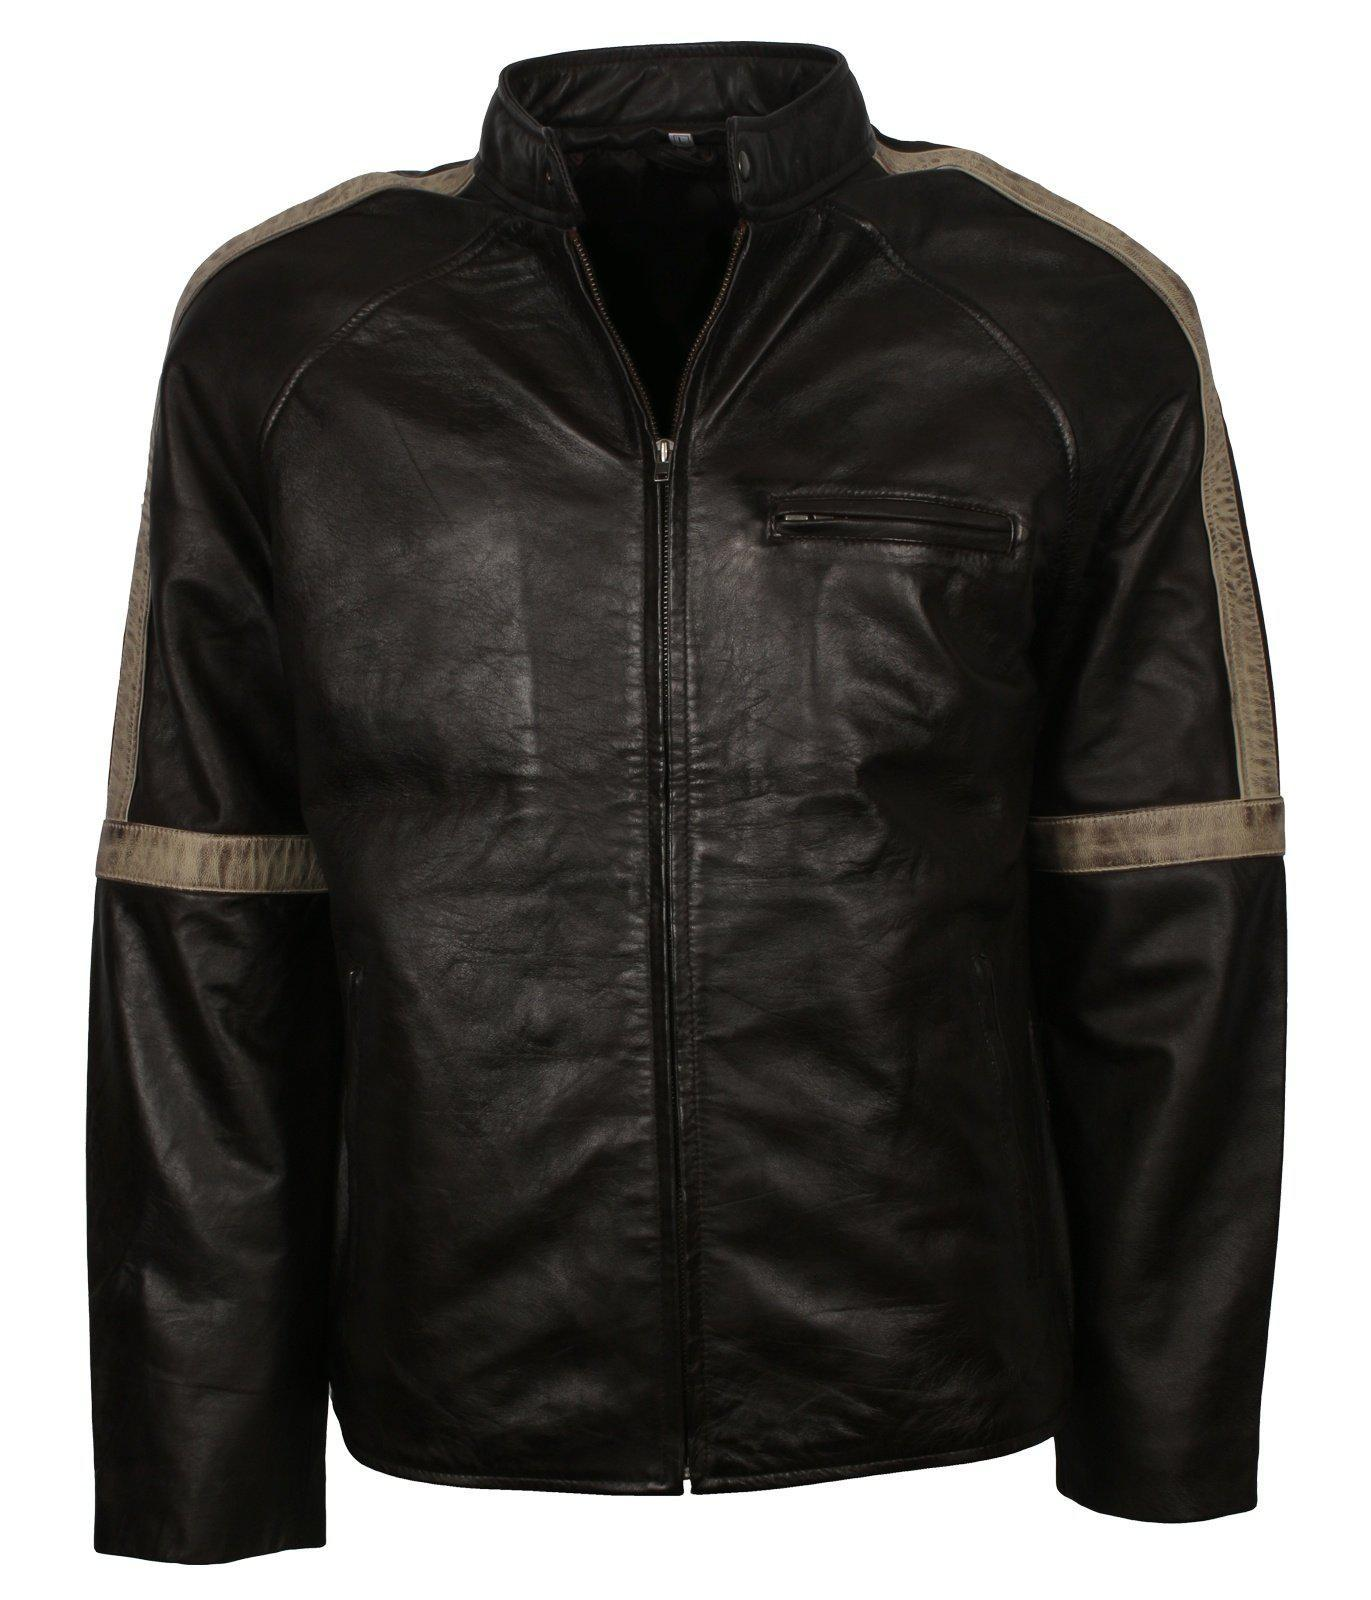 Black Classic Motorcycle Leather Jacket